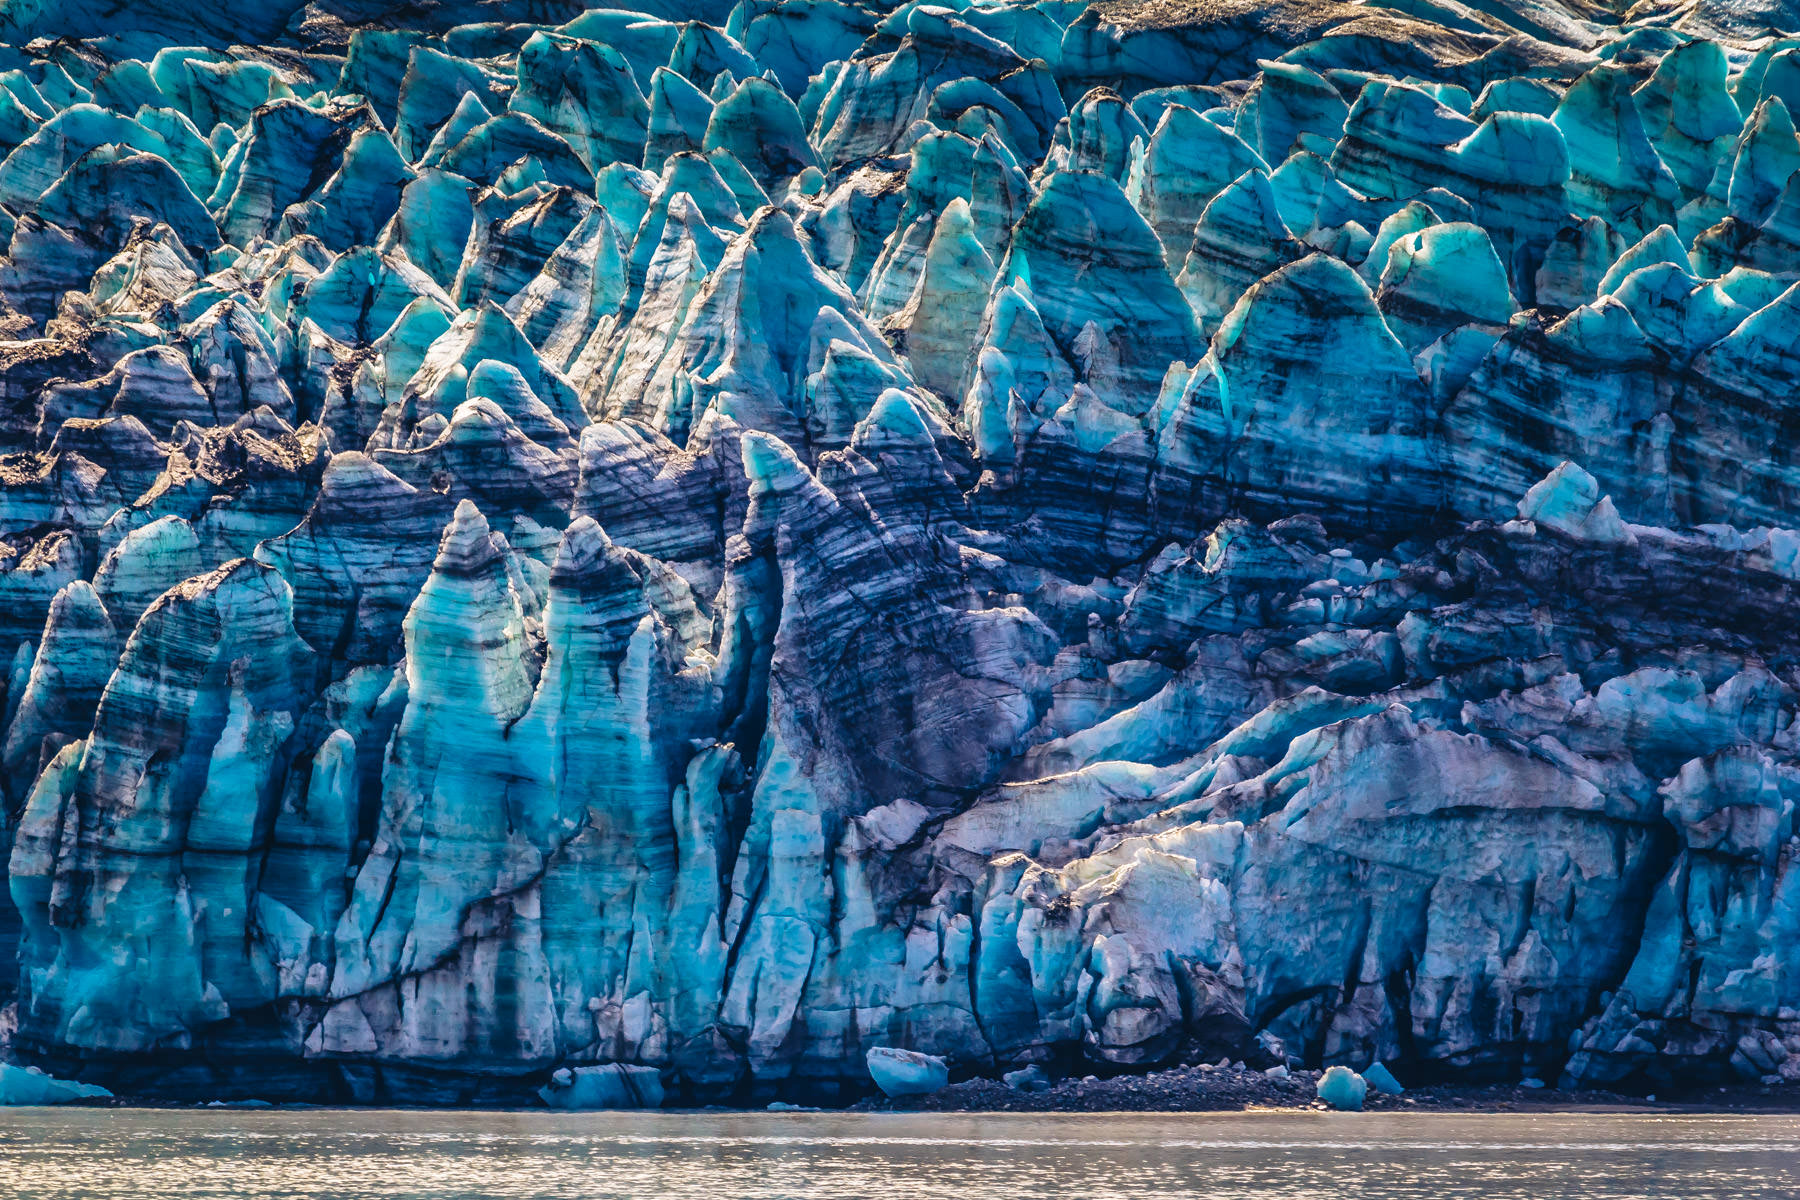 Layers of ice showing the passage of time in the 250-foot-tall face of Alaska's Margerie Glacier at Glacier Bay National Park.